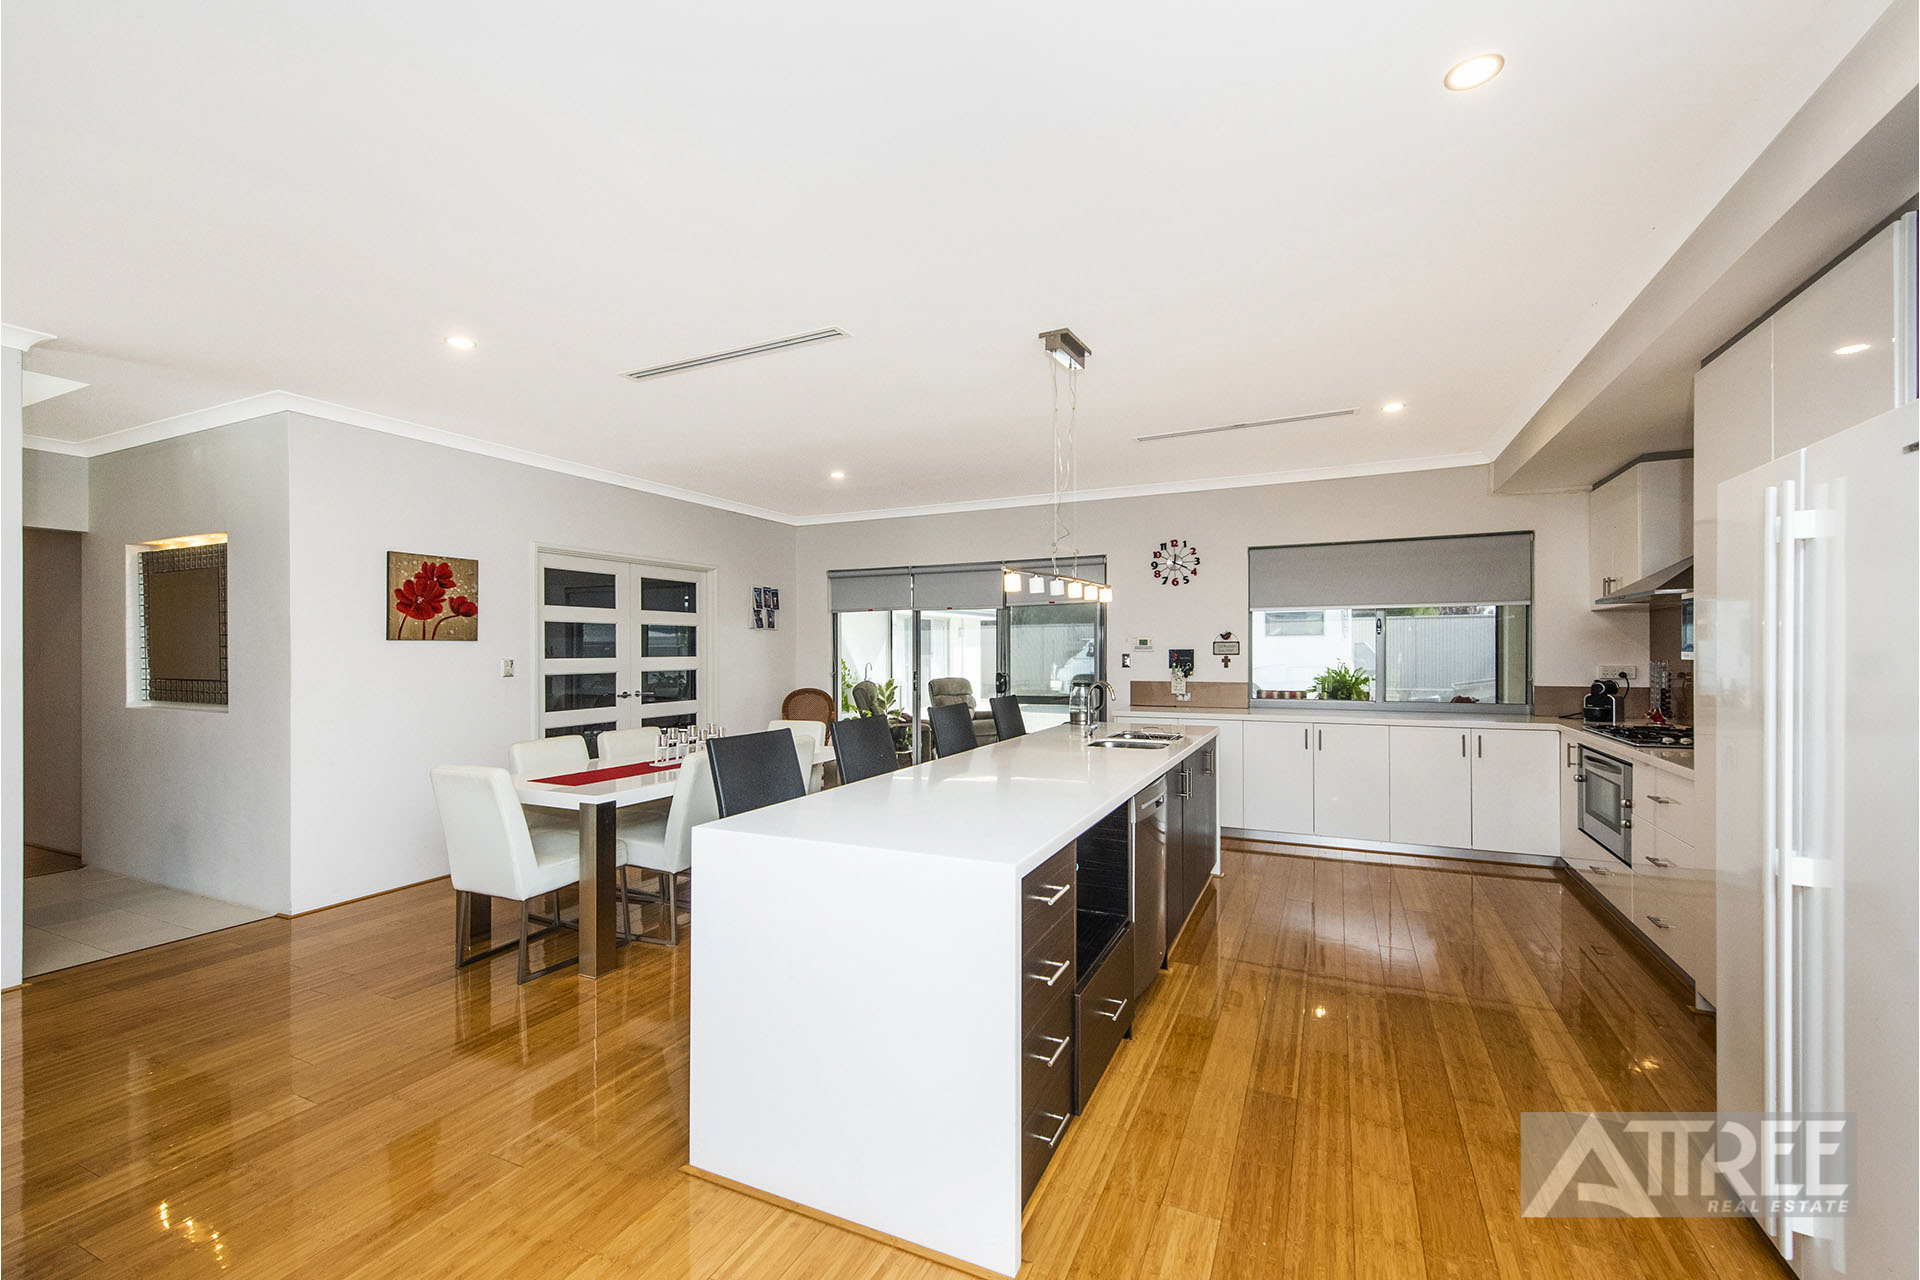 Property for sale in SOUTHERN RIVER, 1 Pedalstone Drive, Andrew Vidot -  The Vidots : Attree Real Estate